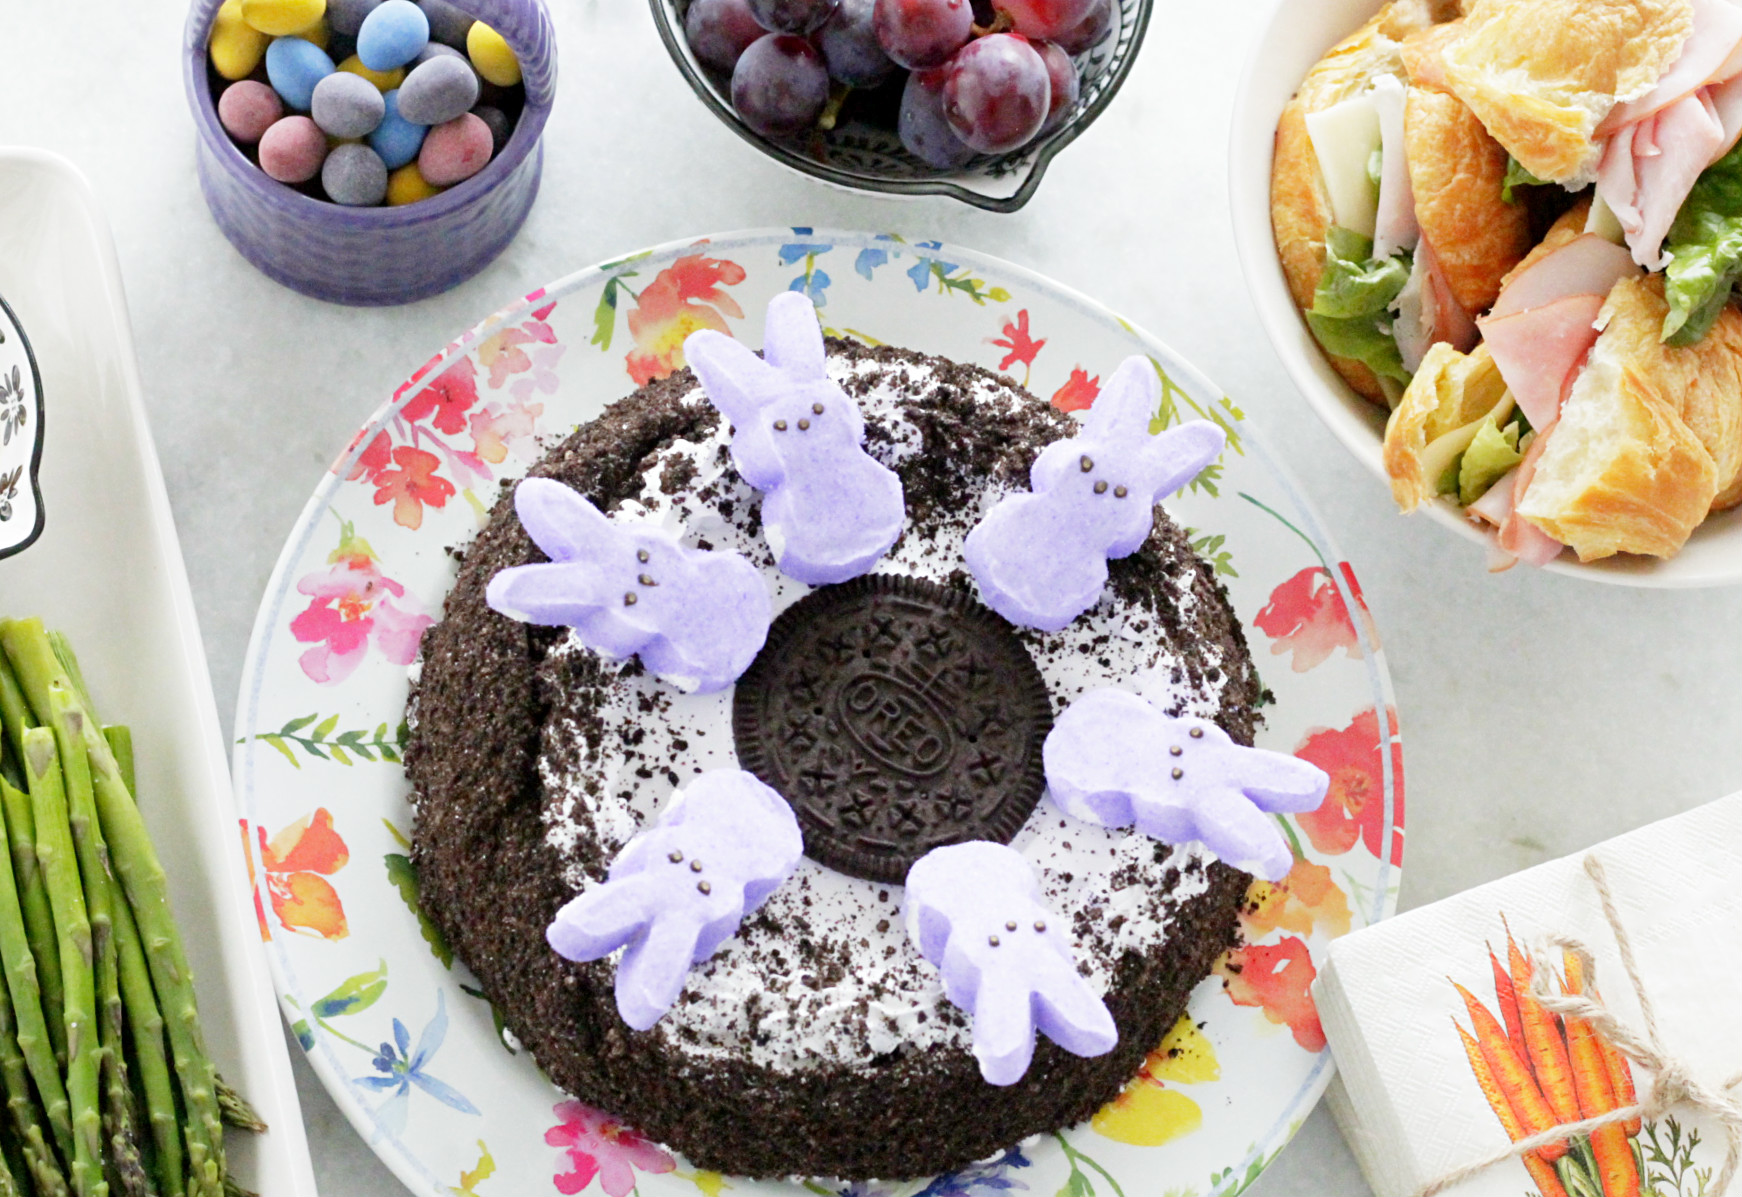 Oreo Ice Cream Cake with Marshmallow Bunnies